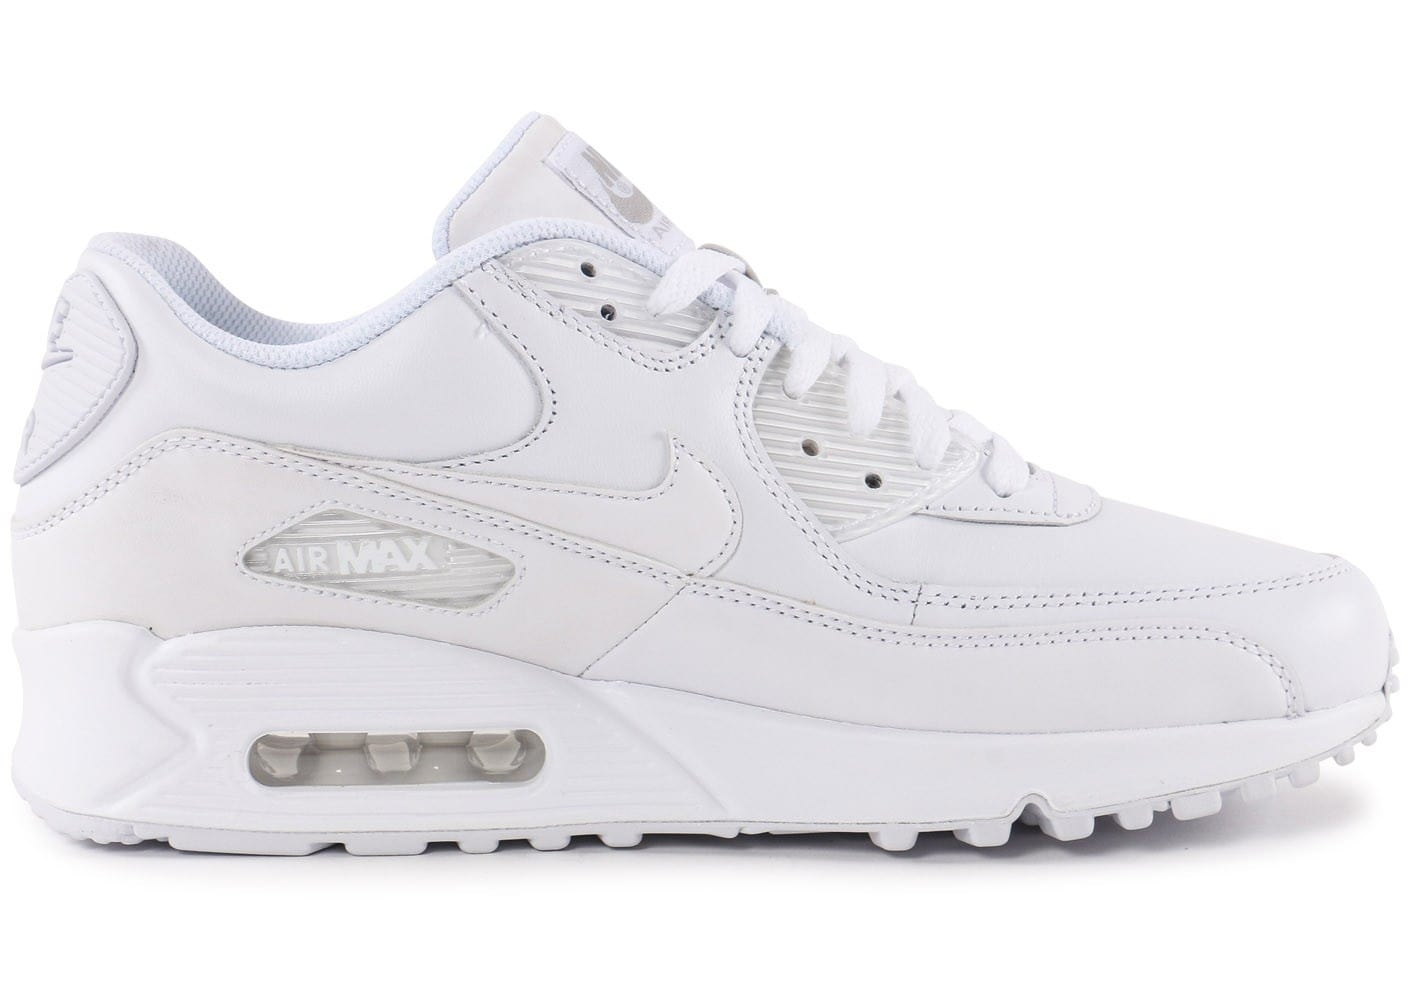 reputable site a30a1 d7b37 chaussures nike air max 90 leather blanche vue interieure